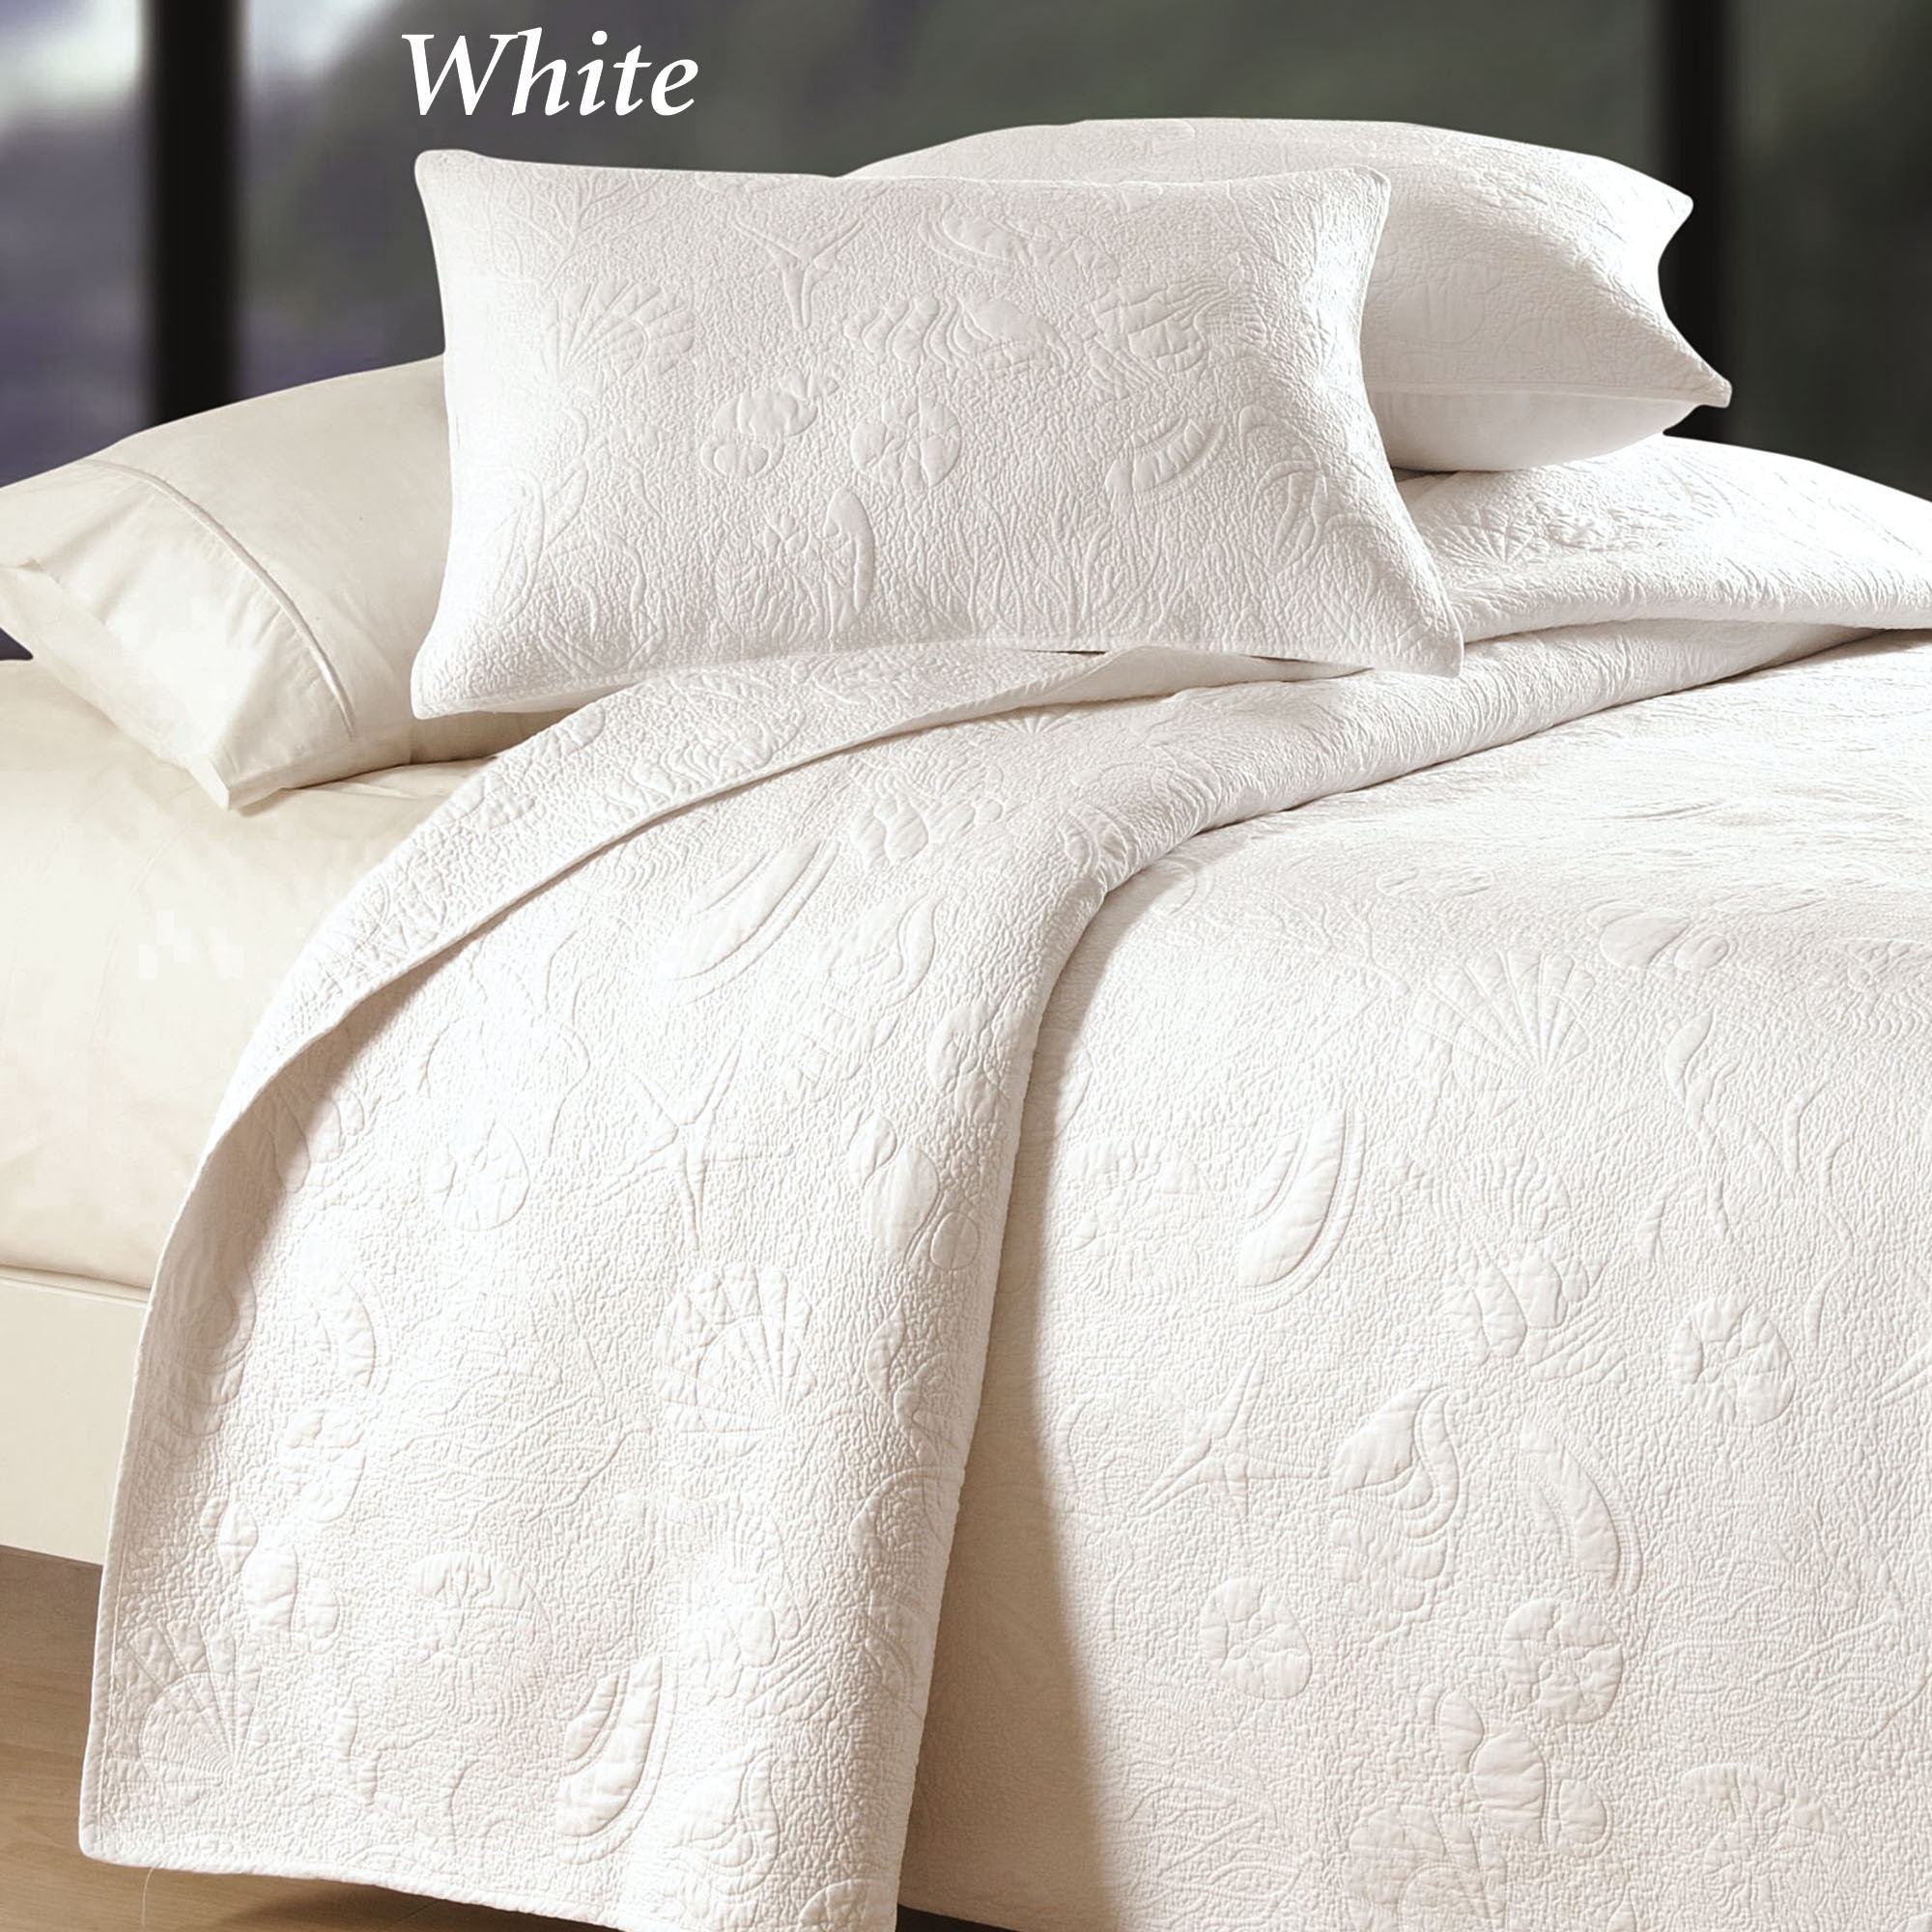 Captivating coverlets for fantastic bedroom ideas with matelasse coverlet